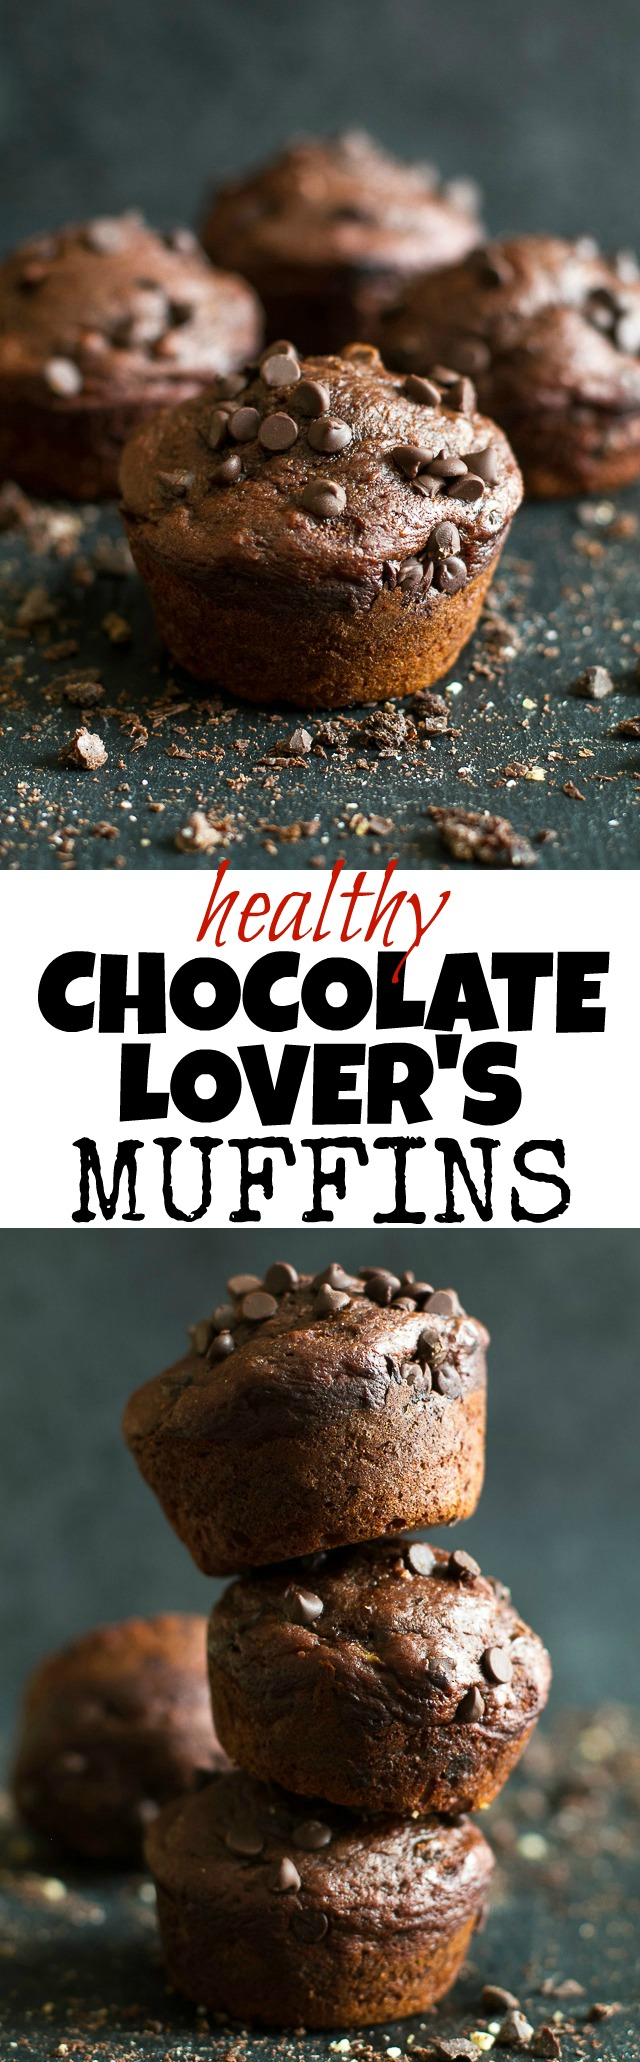 These Healthy Chocolate Lover's Muffins are so tender and flavorful that you'd never guess they're made without any butter, oil, or refined sugar. A healthy and DELICIOUS way to satisfy those chocolate cravings! | runningwithspoons.com #recipe #desserts